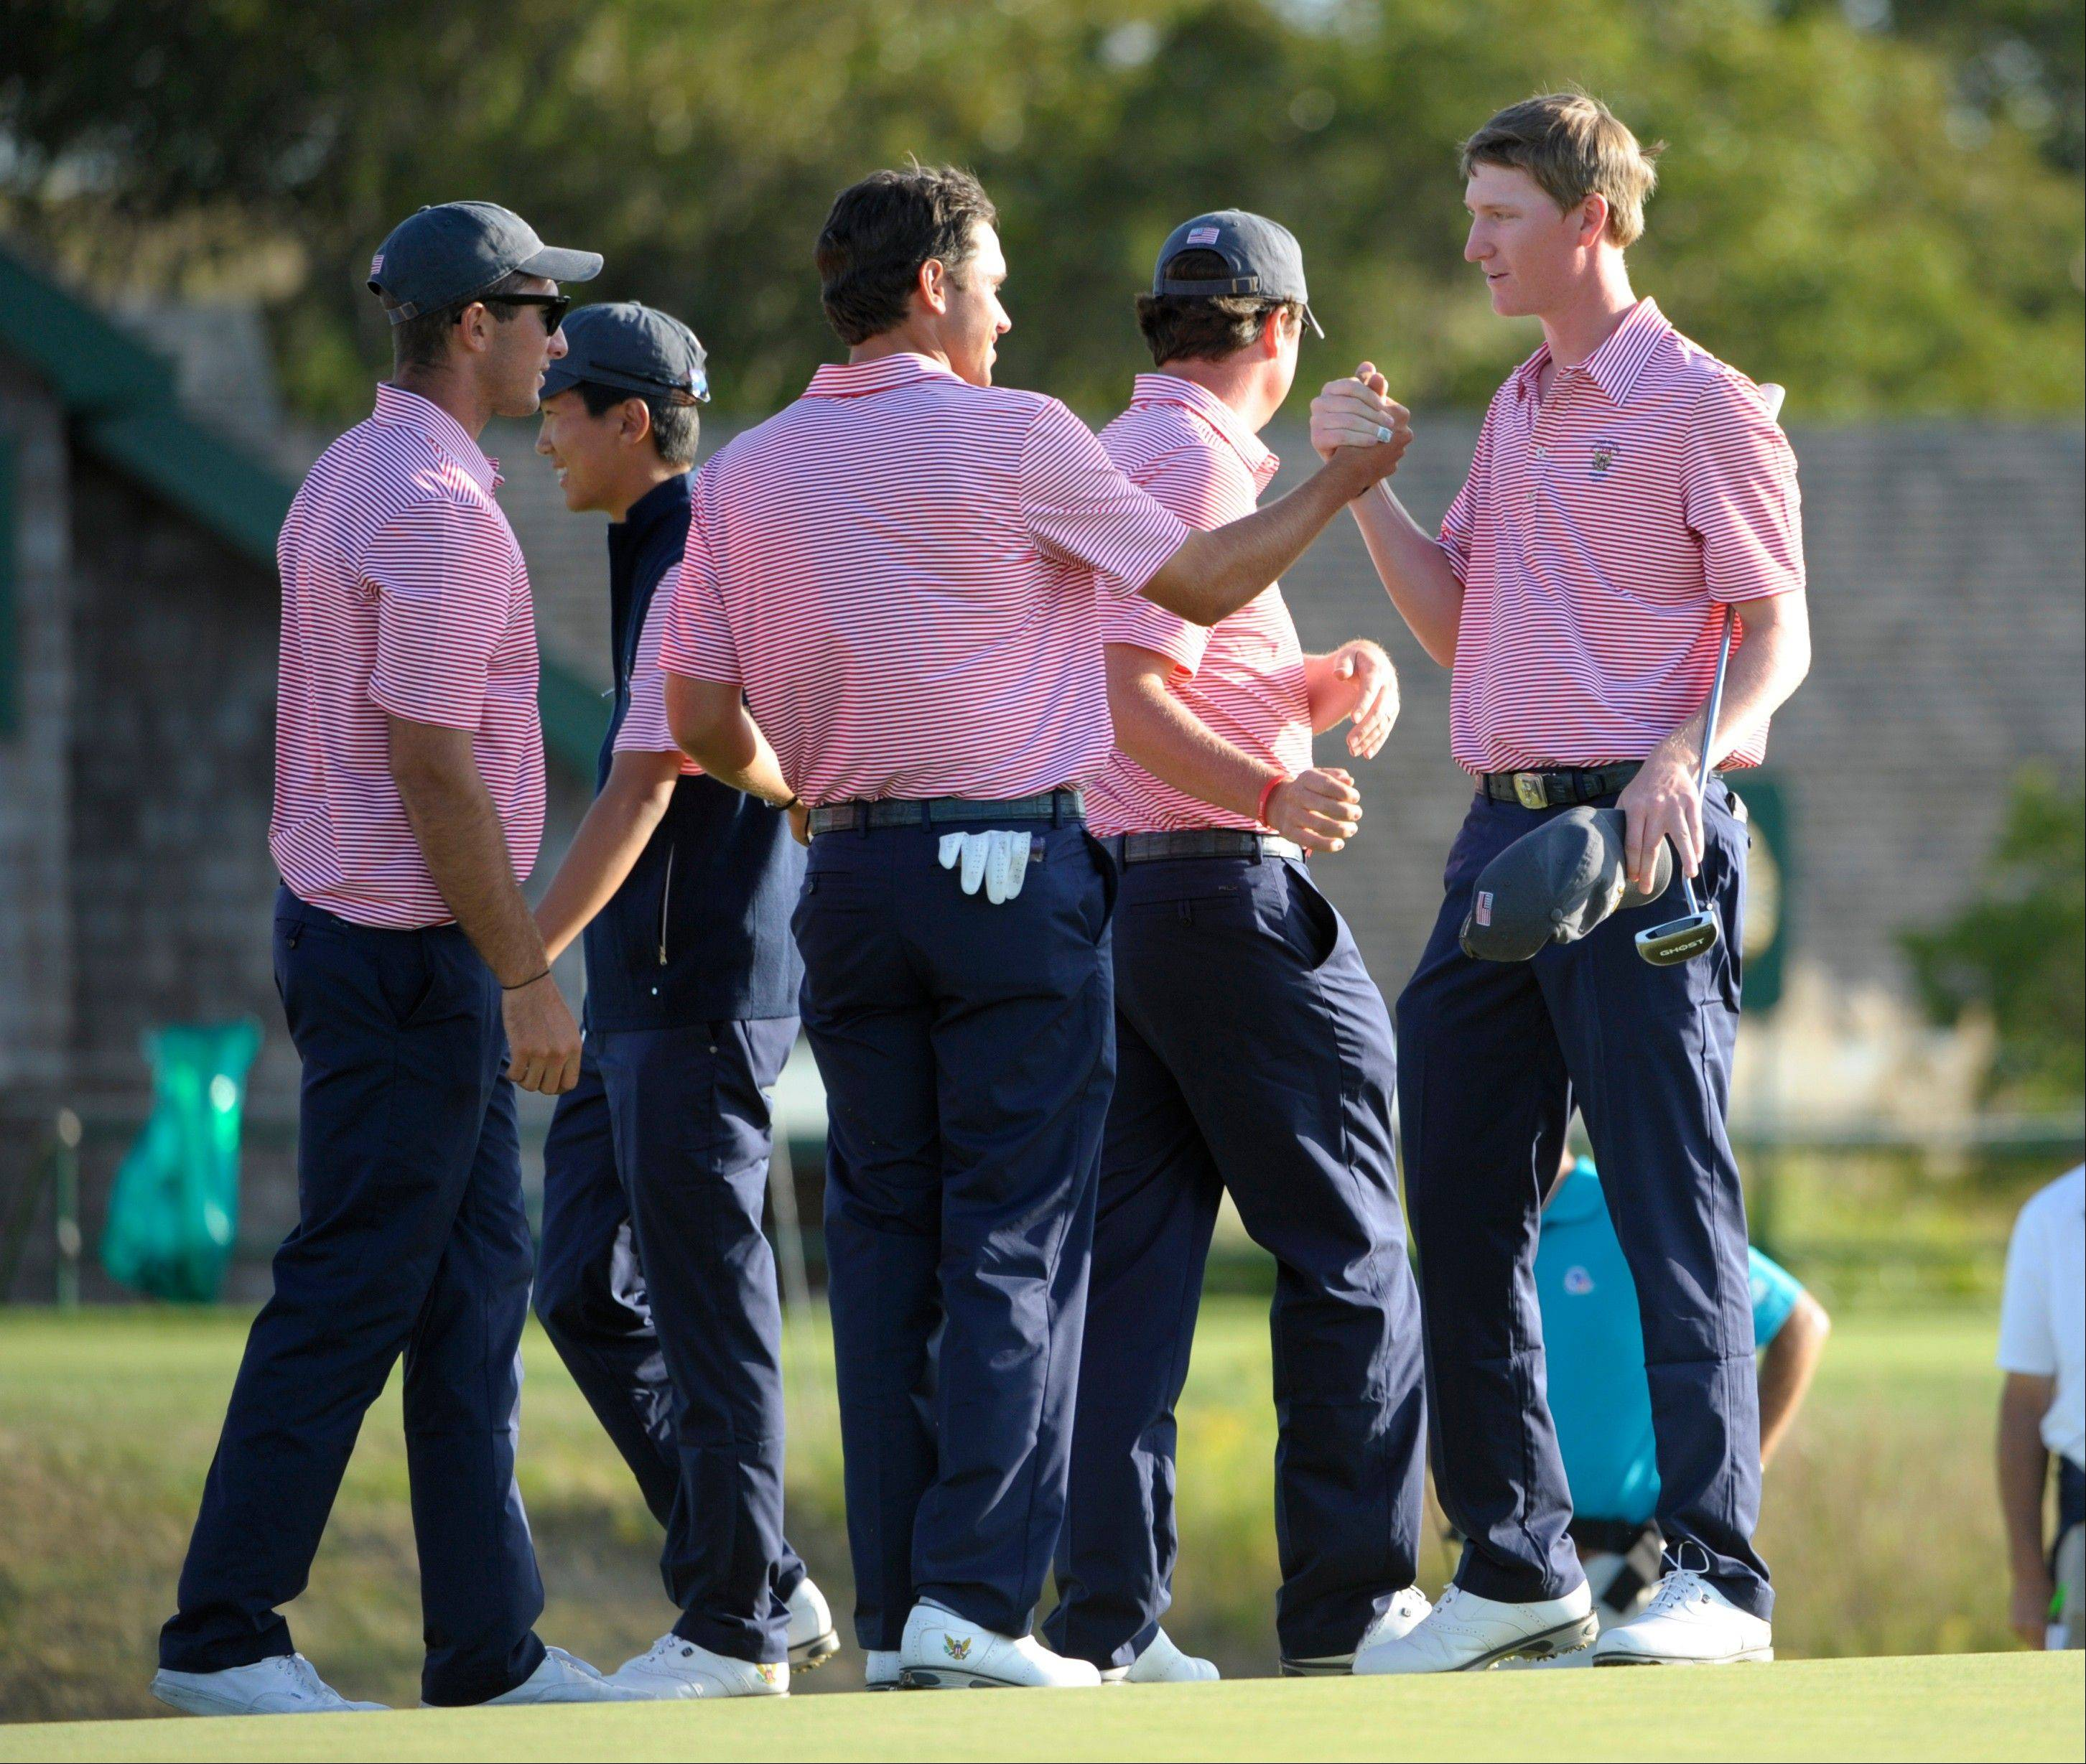 Jordan Niebrugge, right, is greeted by U.S. teammates Max Homa, left, and Cory Whitsett after Niebrugge completed the 18th hole Saturday in the Walker Cup tournament in Southampton, N.Y.